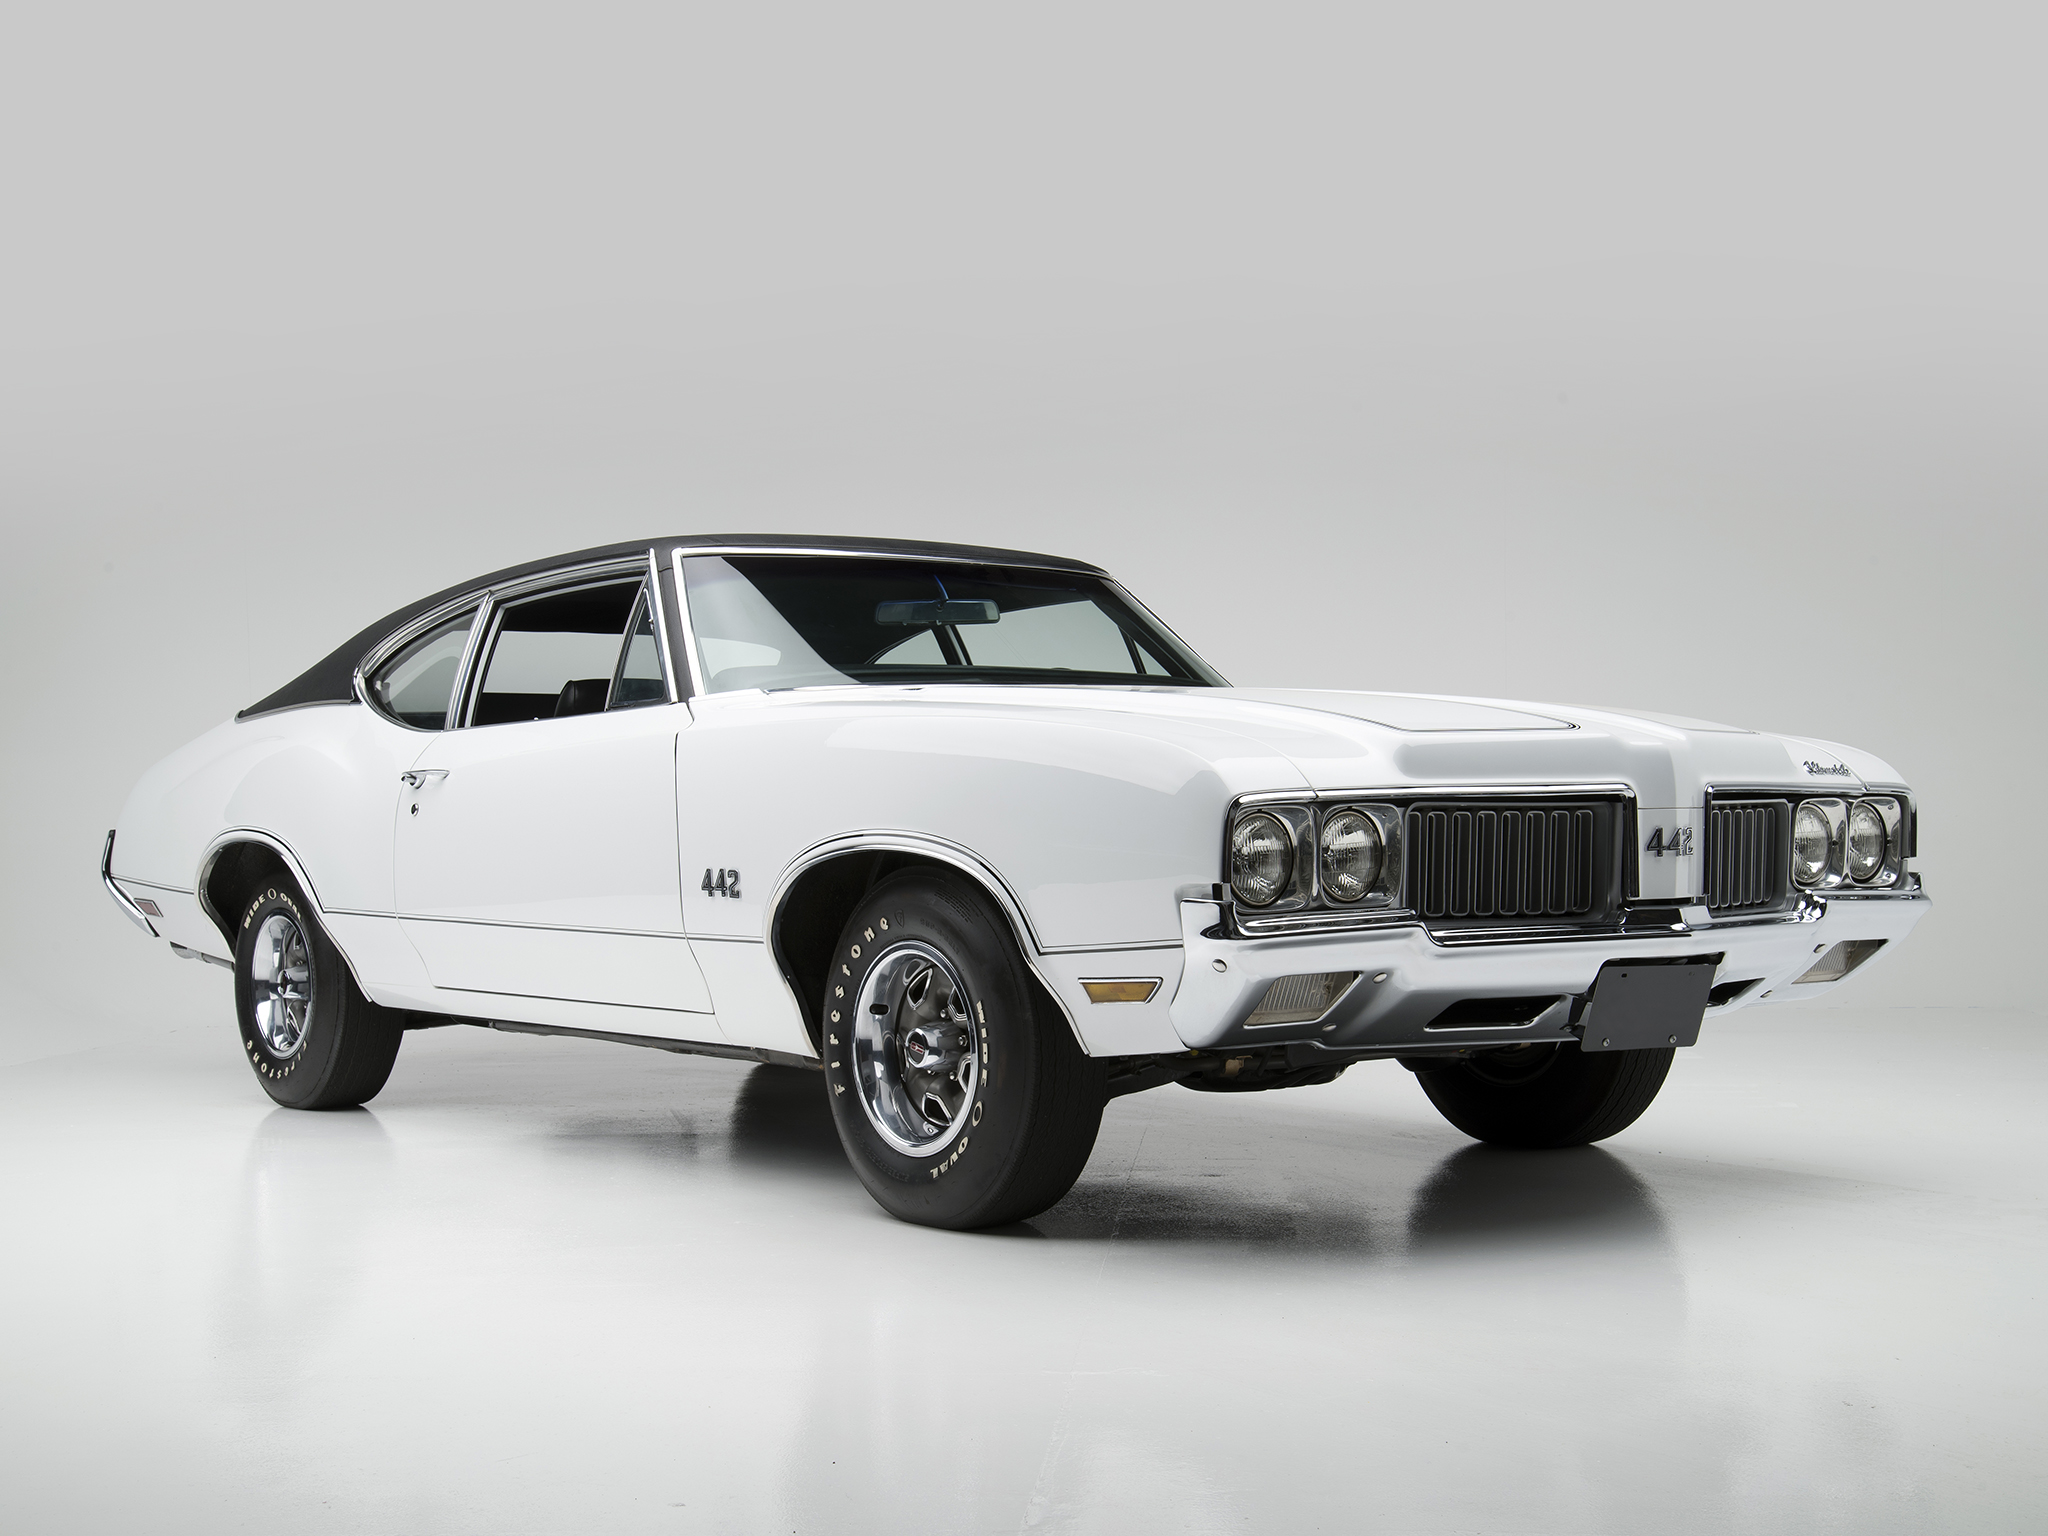 2048x1536 - Oldsmobile Wallpapers 7